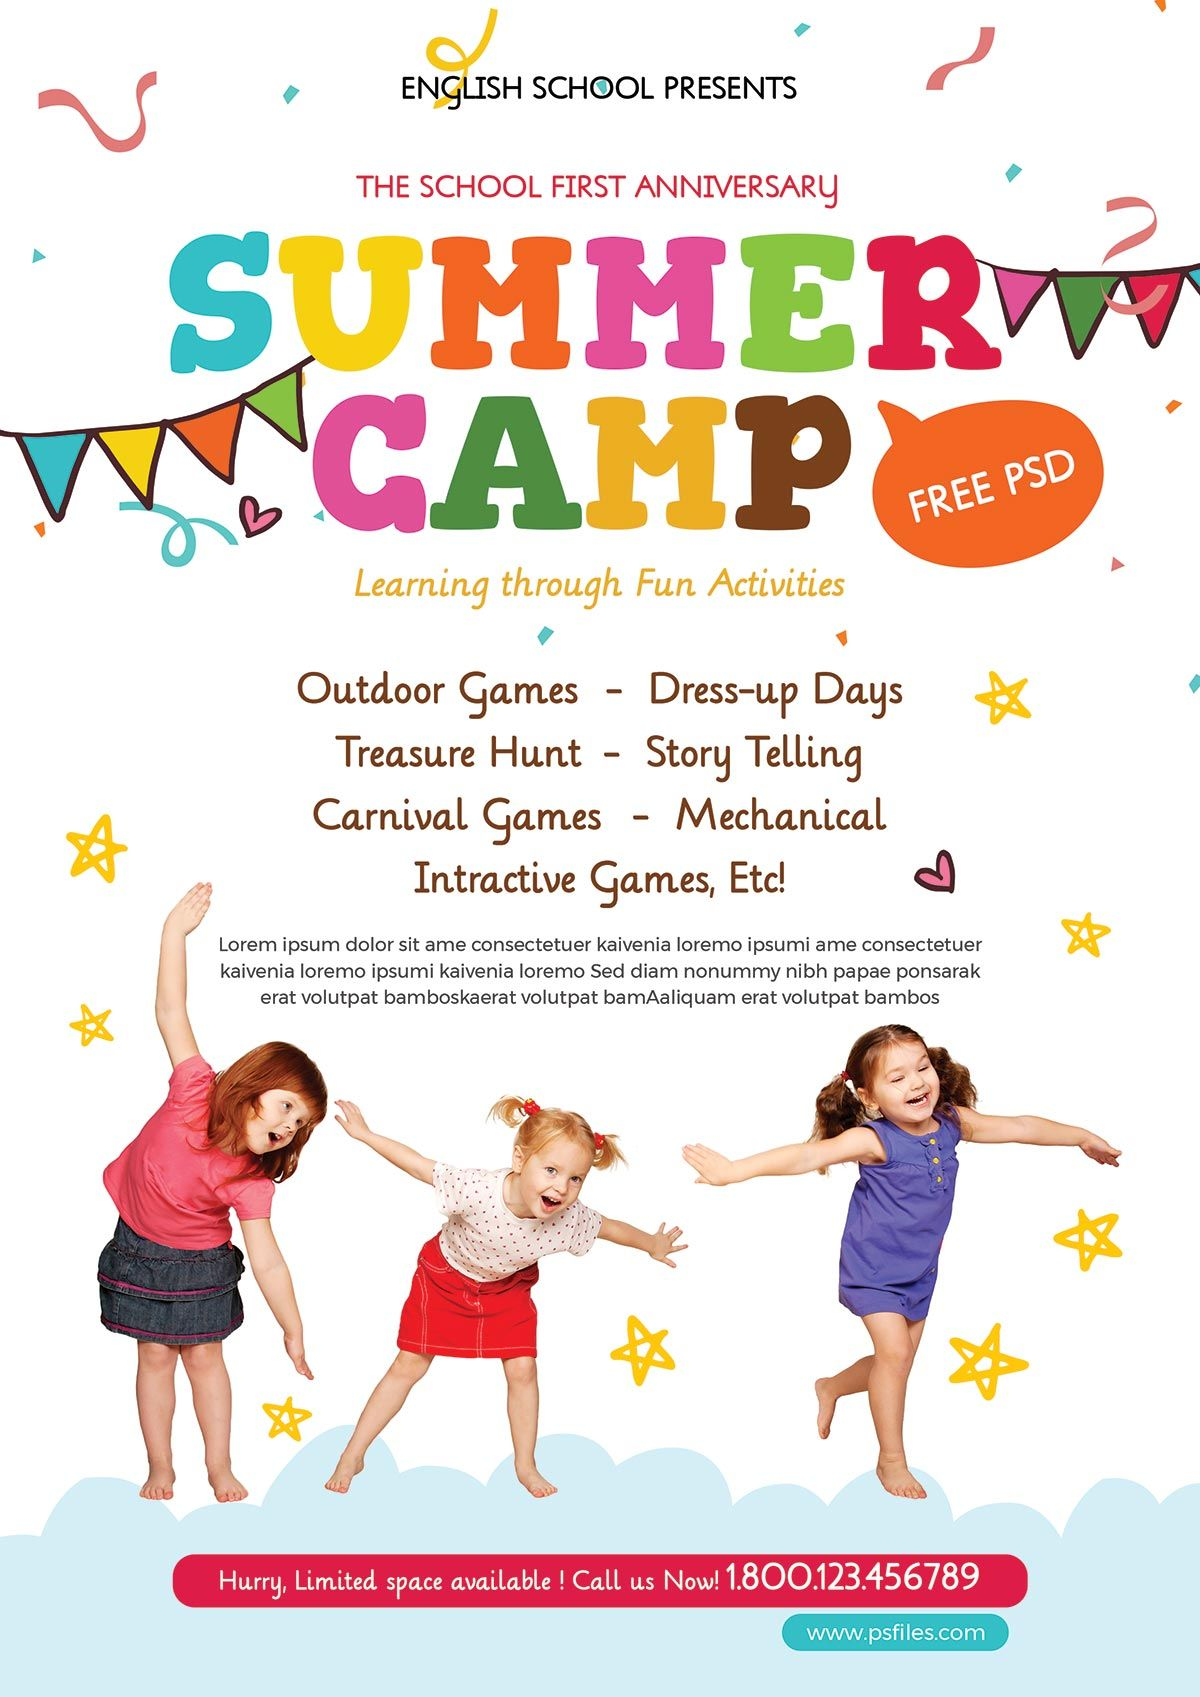 Free Kids Summer Camp Psd Flyer For Pre Schools Summer Camps For Kids Free Brochure Template Free Psd Flyer Templates